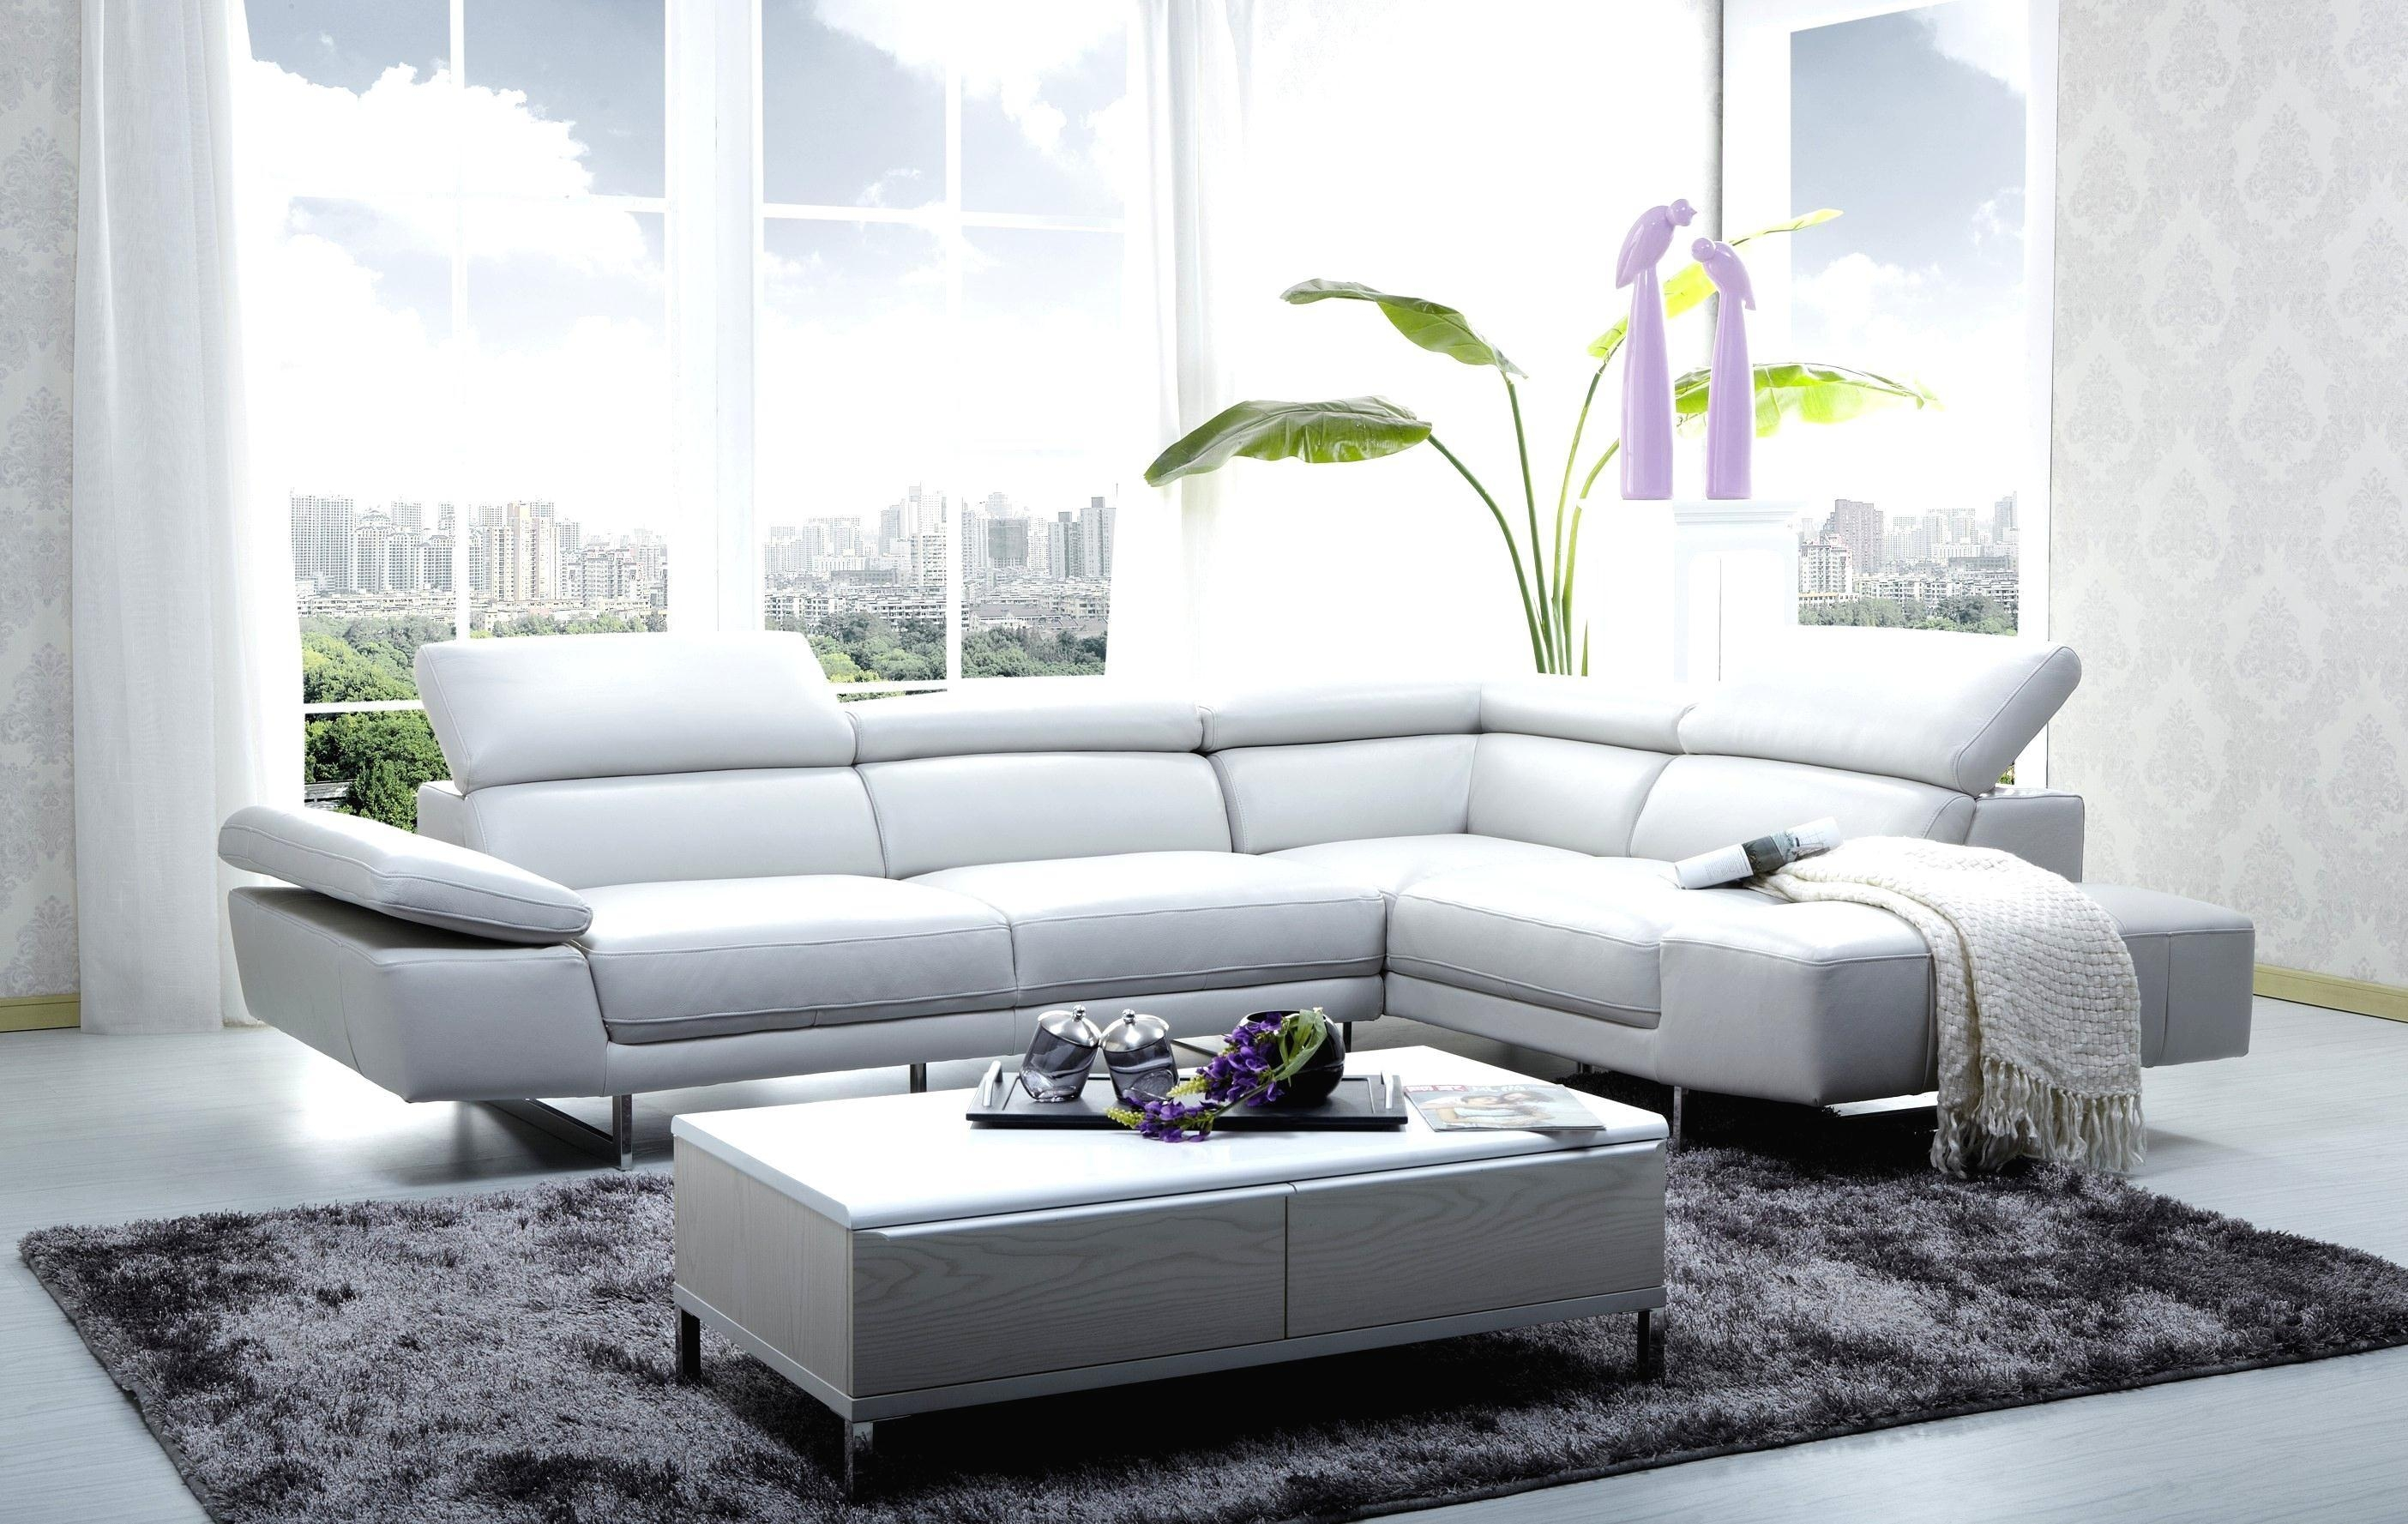 High End Sectional Sofas - Tourdecarroll with regard to High End Leather Sectionals